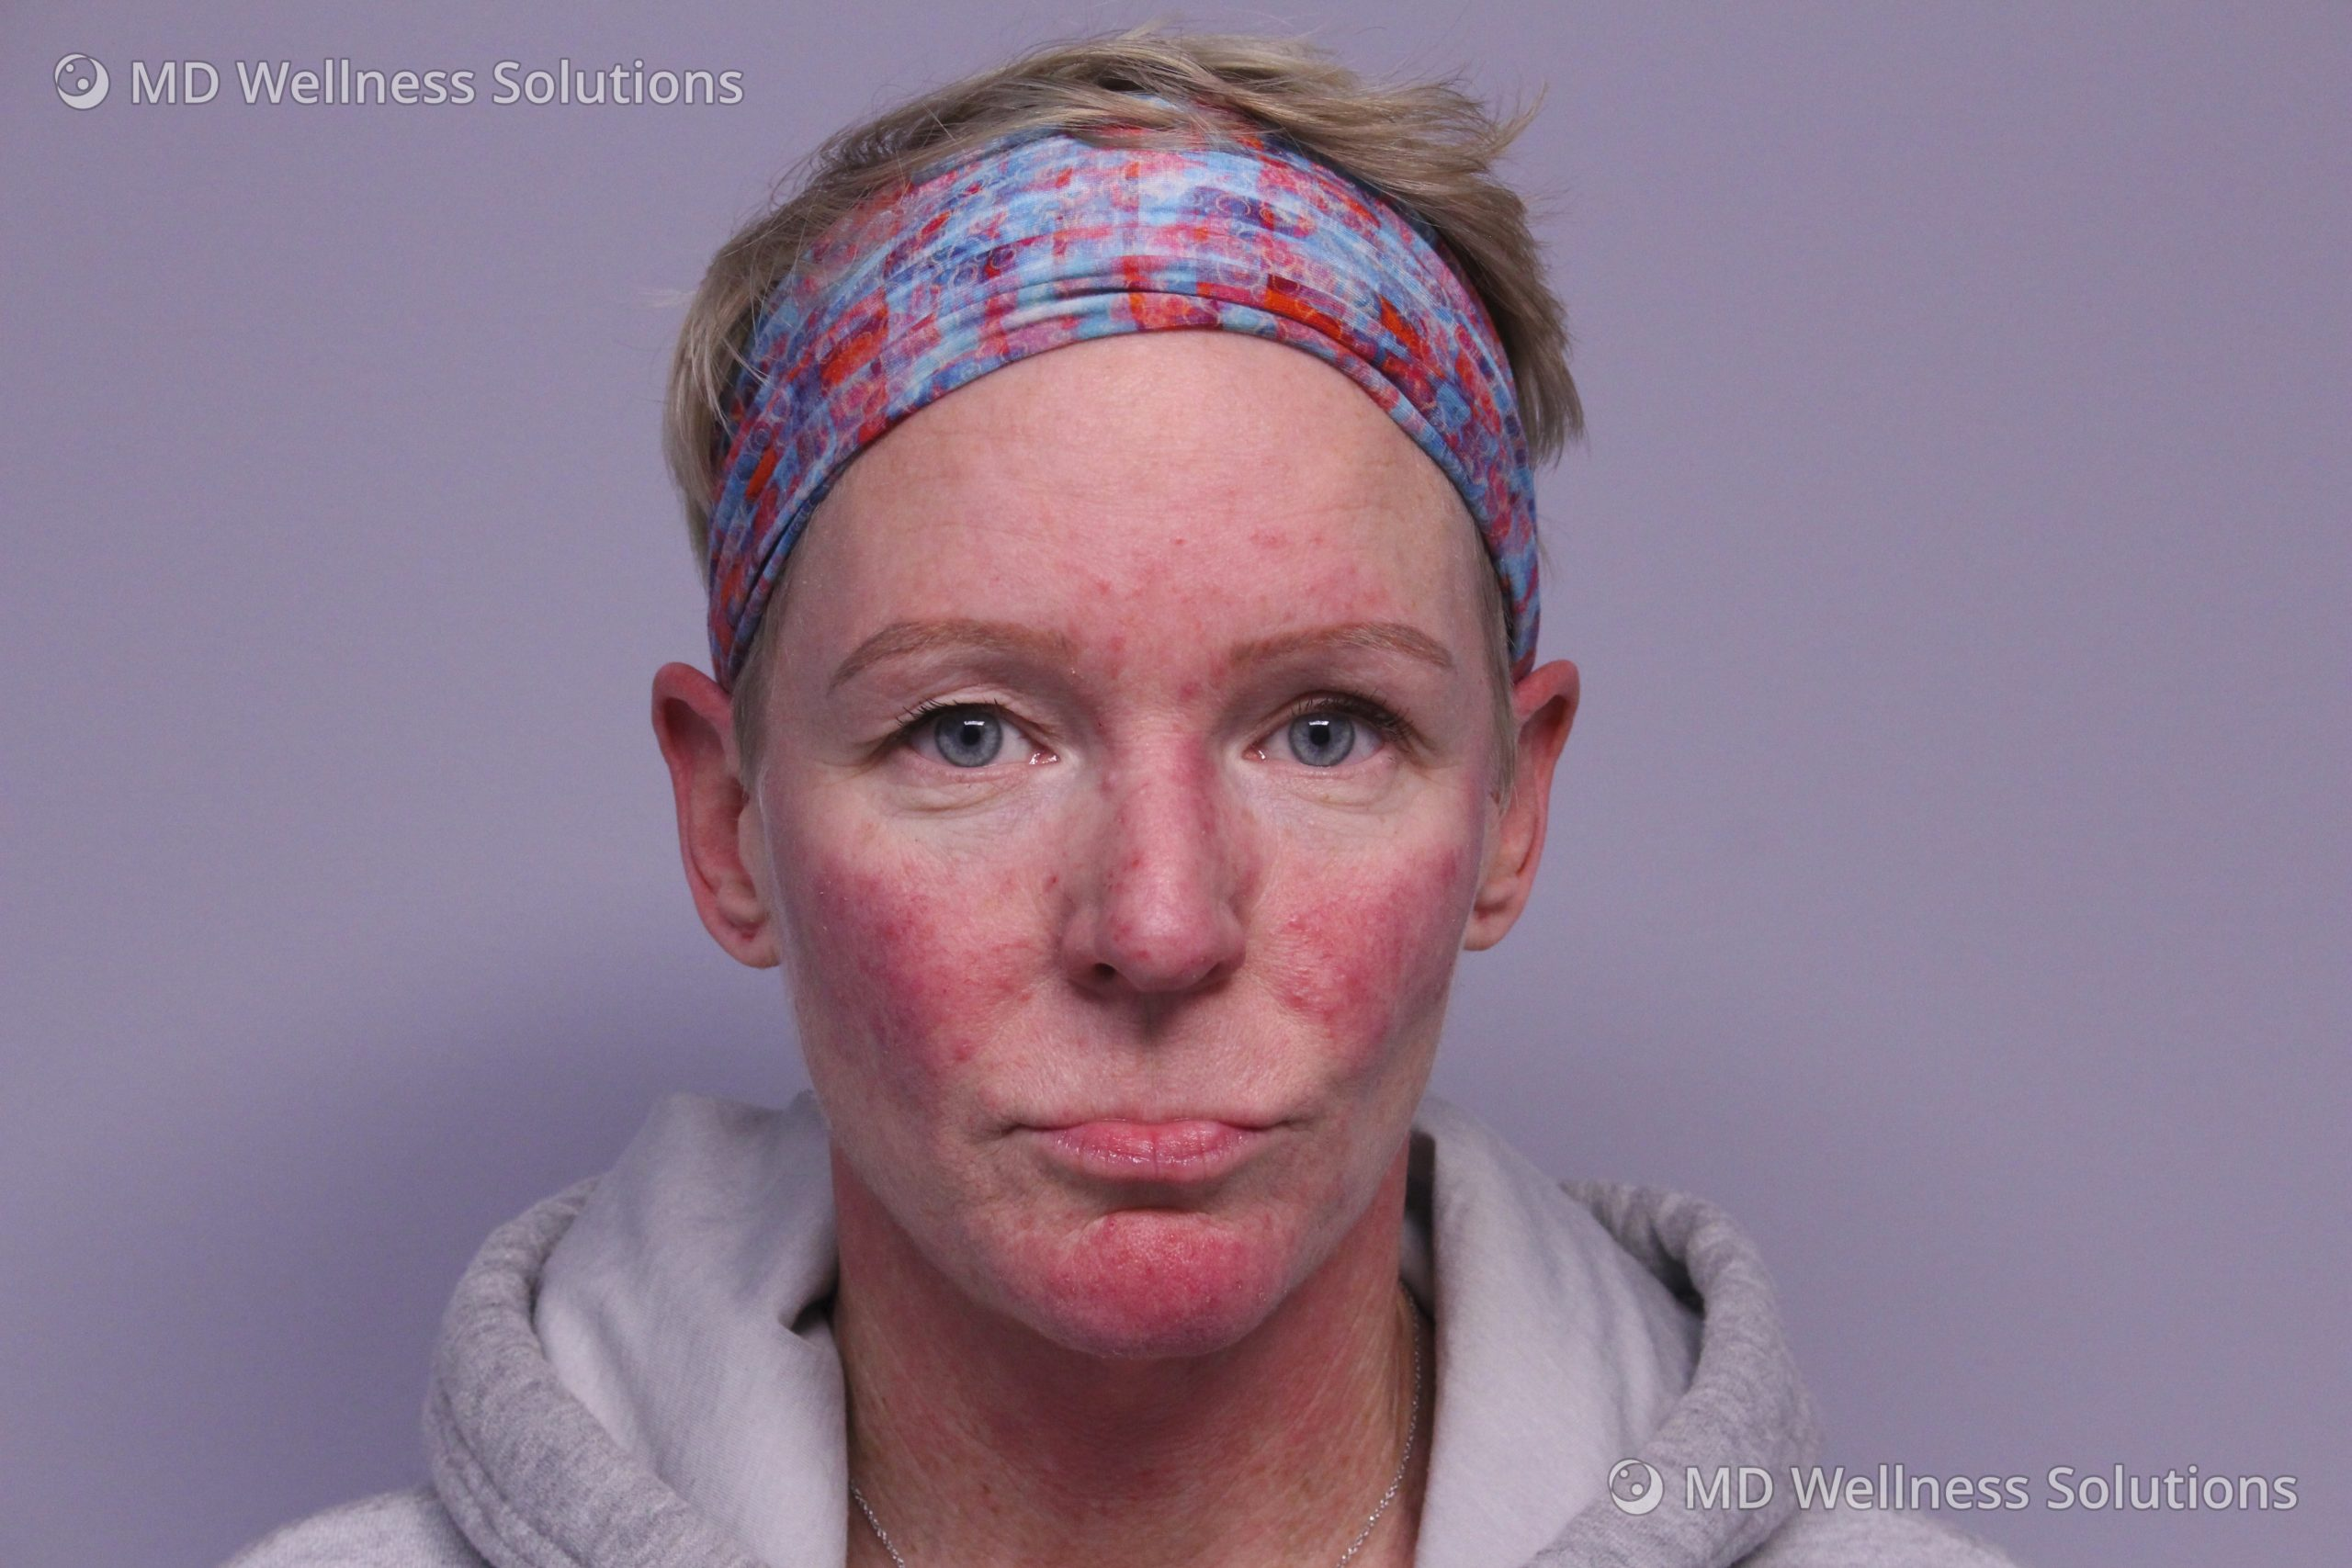 45-54 year old woman before rosacea treatment